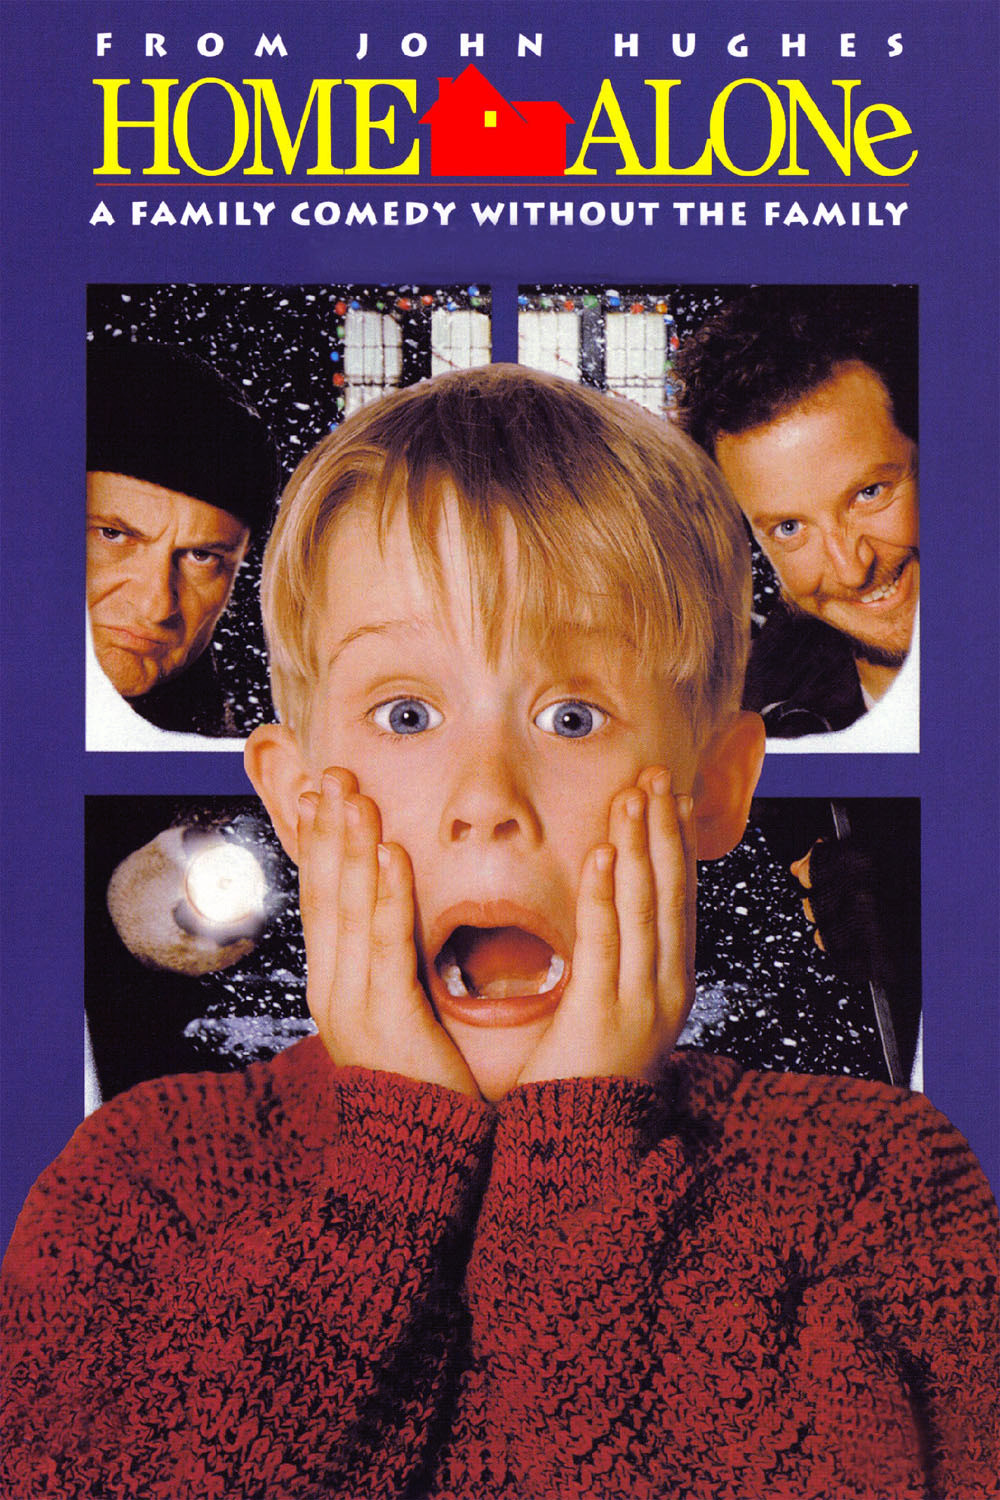 Home Alone in Concert – Film Concerts Live!